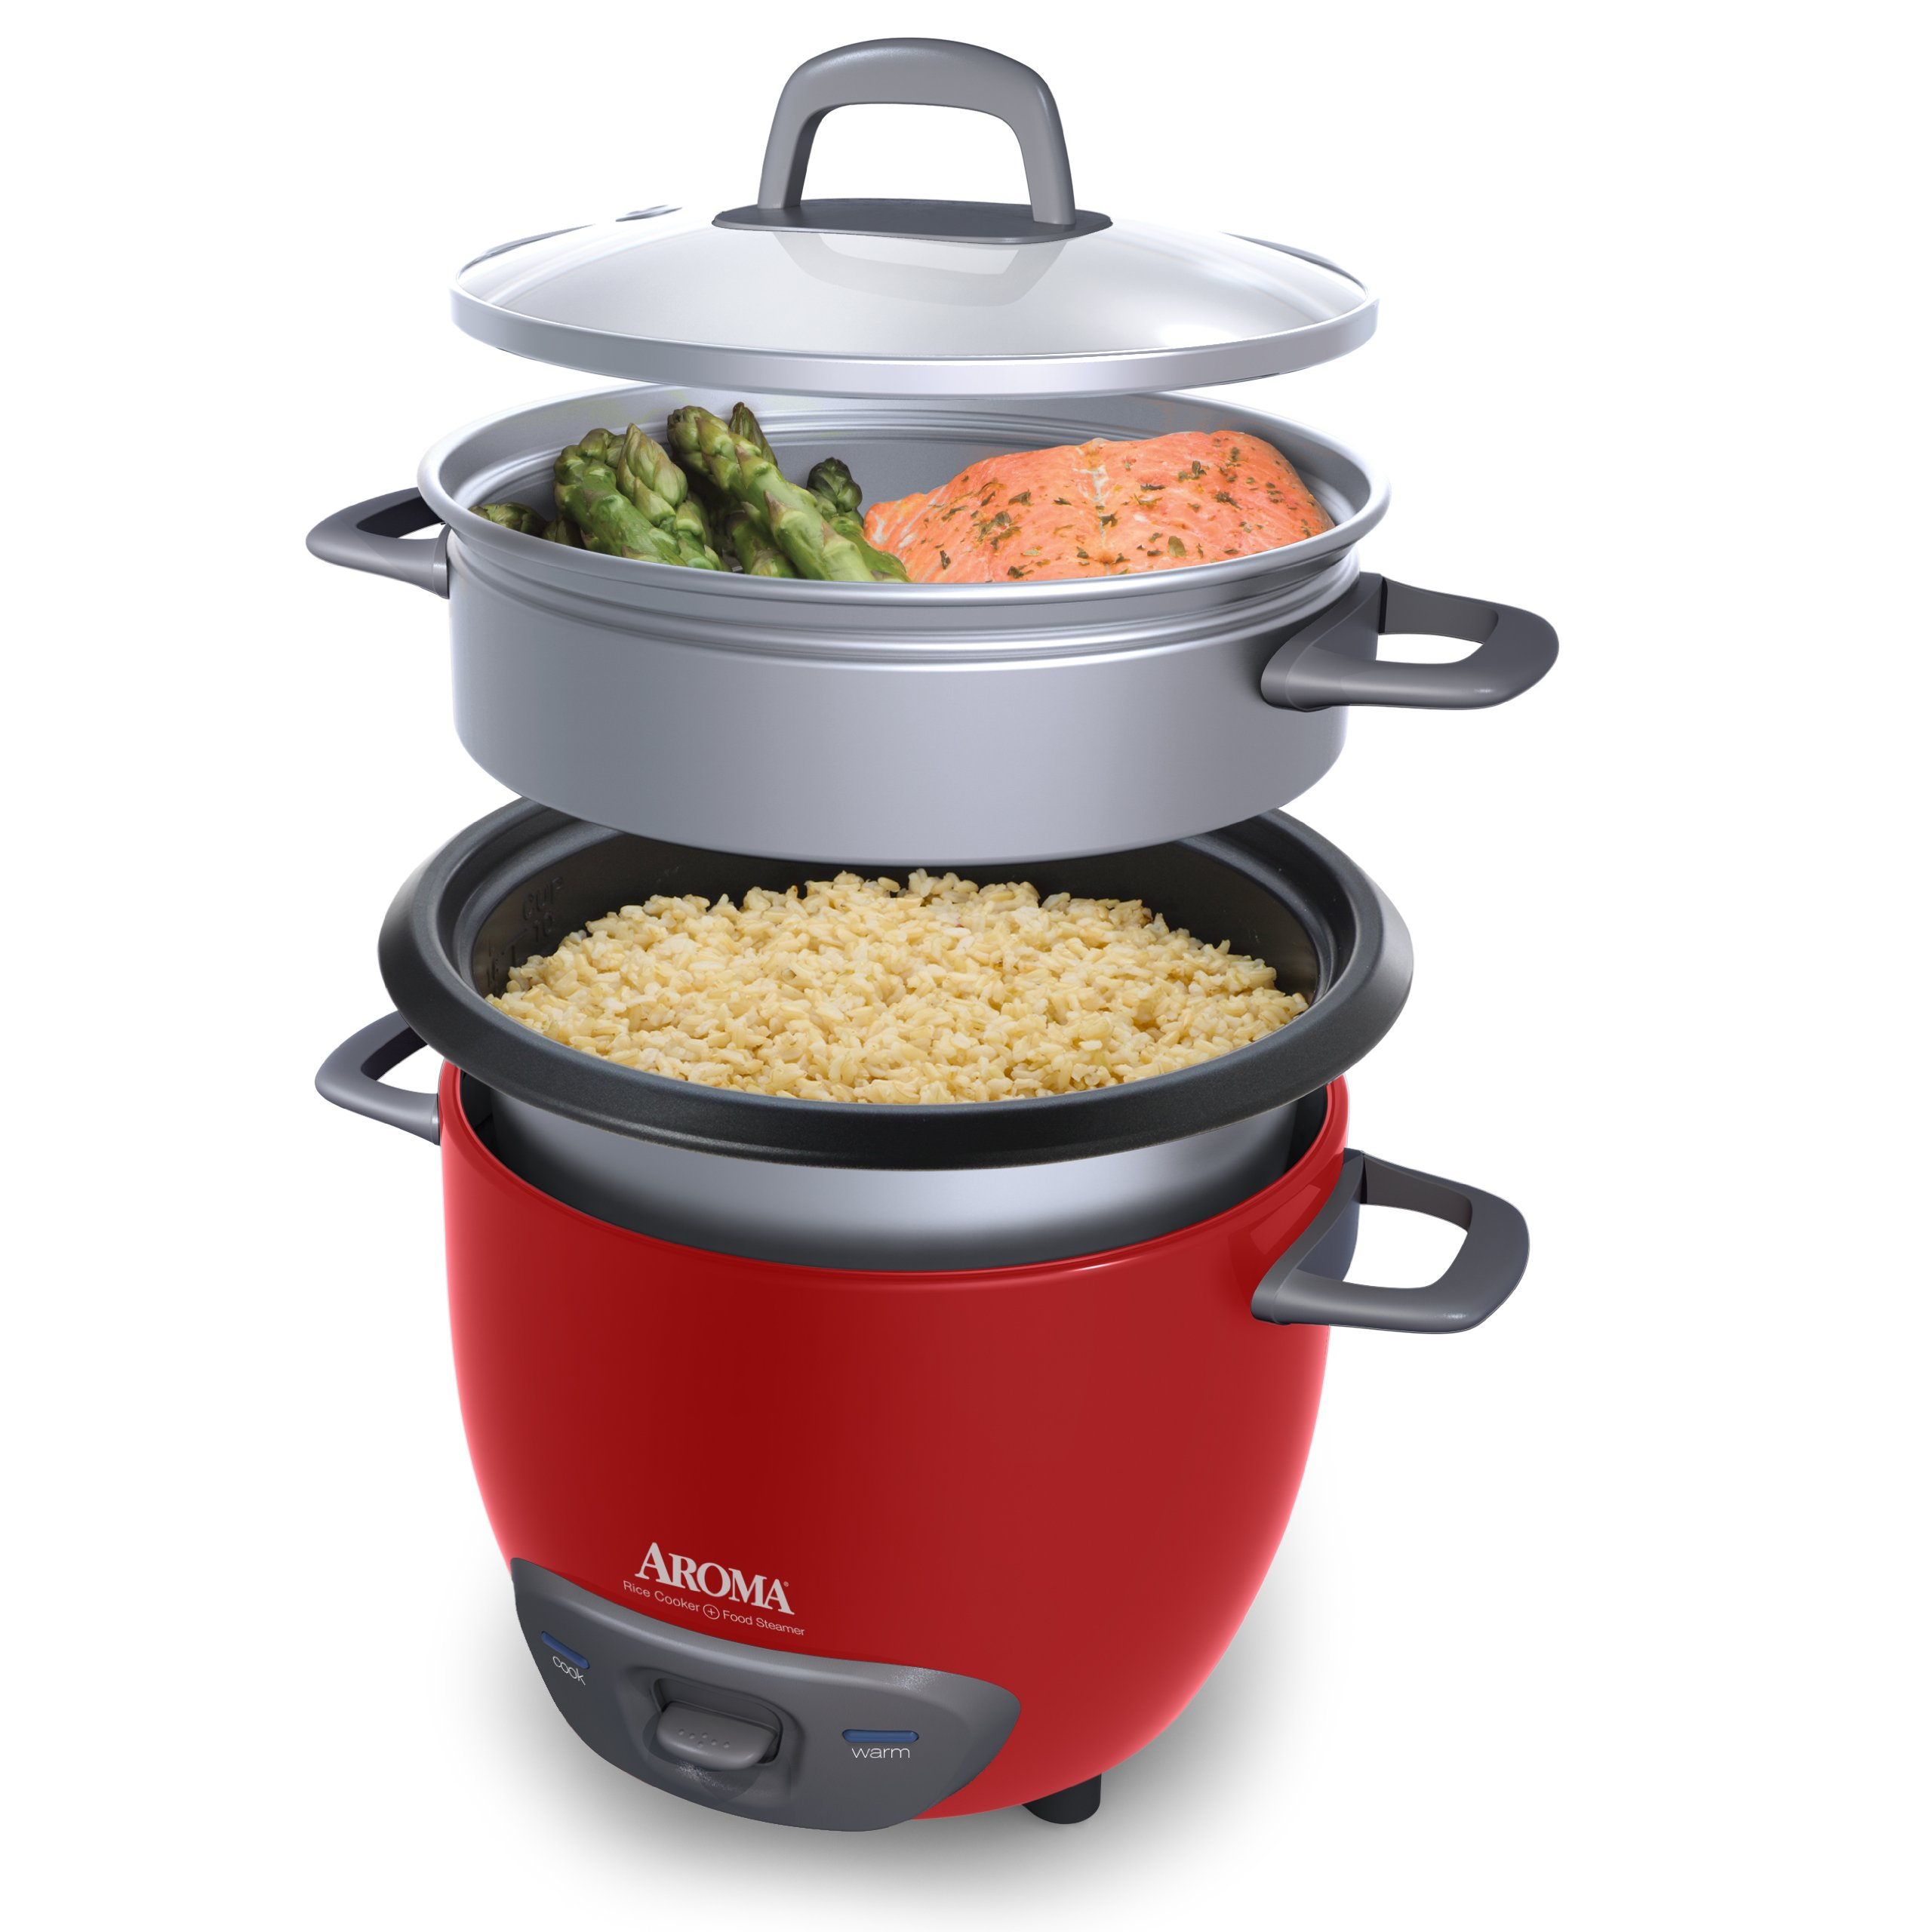 Aroma Housewares 6-Cup (Cooked) (3-Cup UNCOOKED) Pot Style Rice Cooker and Food Steamer by Aroma Housewares (Image #2)